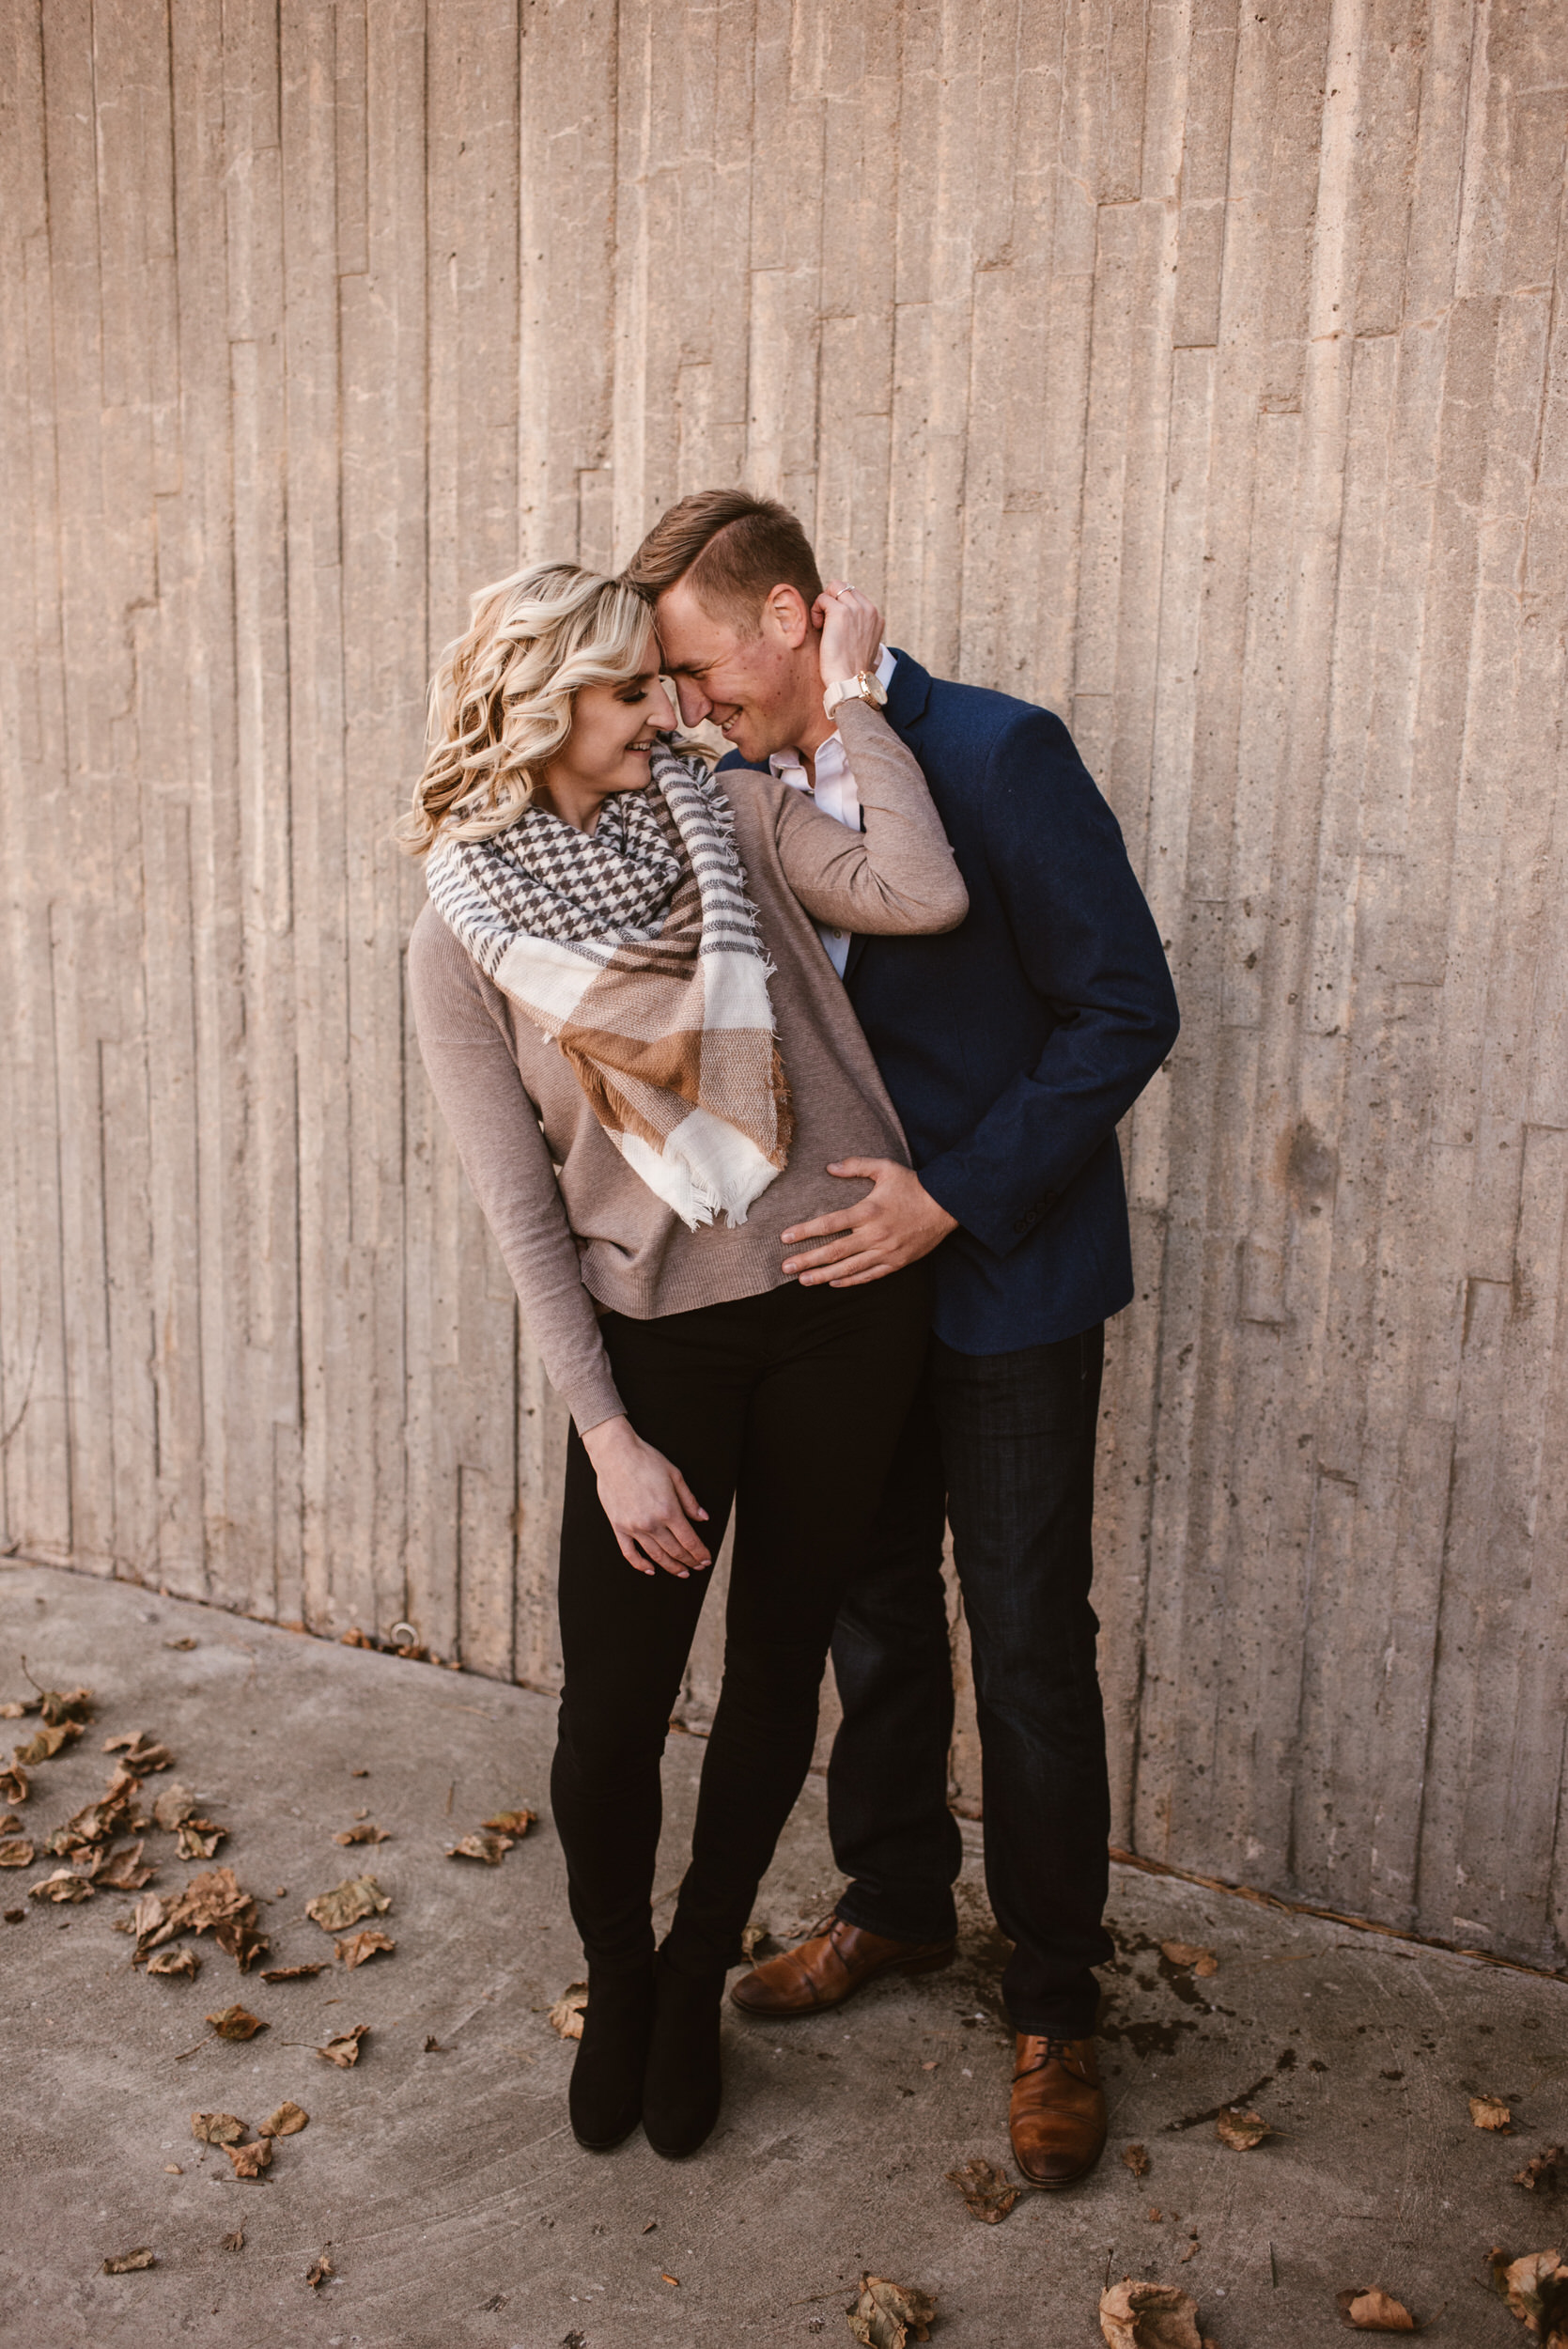 Gene Leahy Mall Omaha Engagement Session Kaylie Sirek Photography 16.jpg